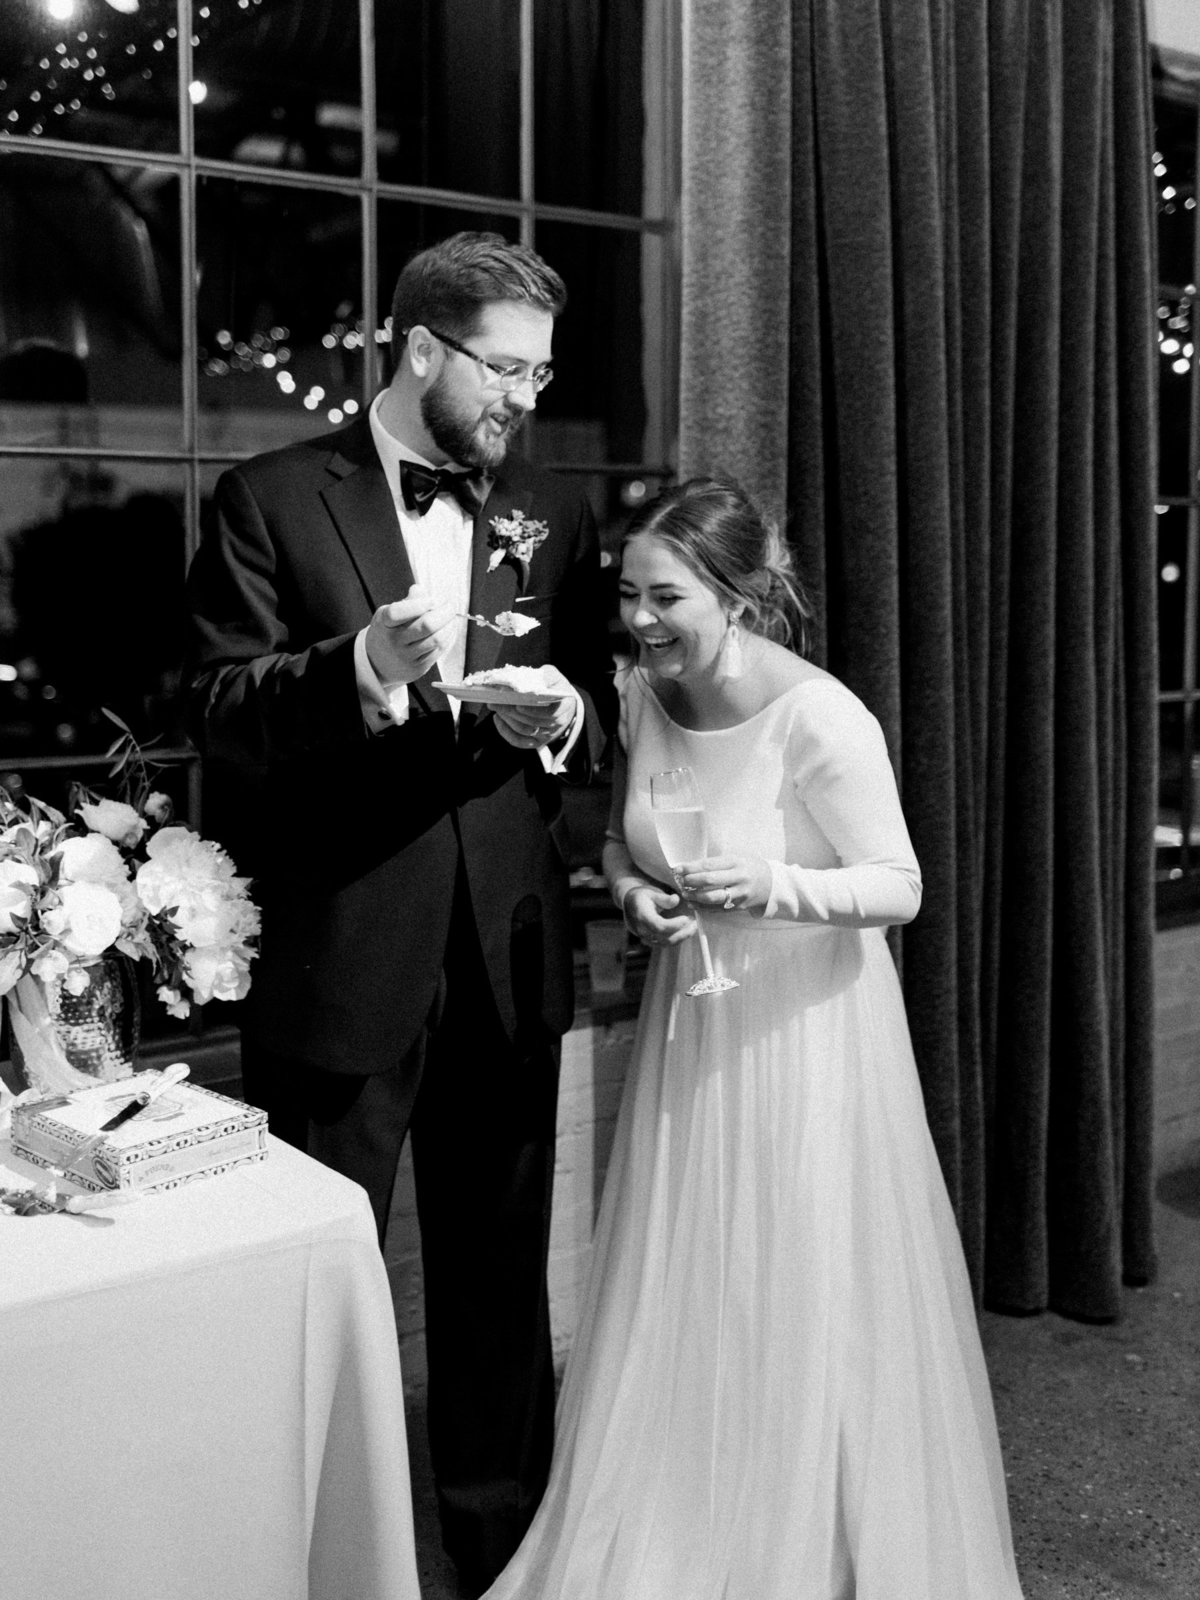 Courtney Hanson Photography - Festive Holiday Wedding in Dallas at Hickory Street Annex-4439